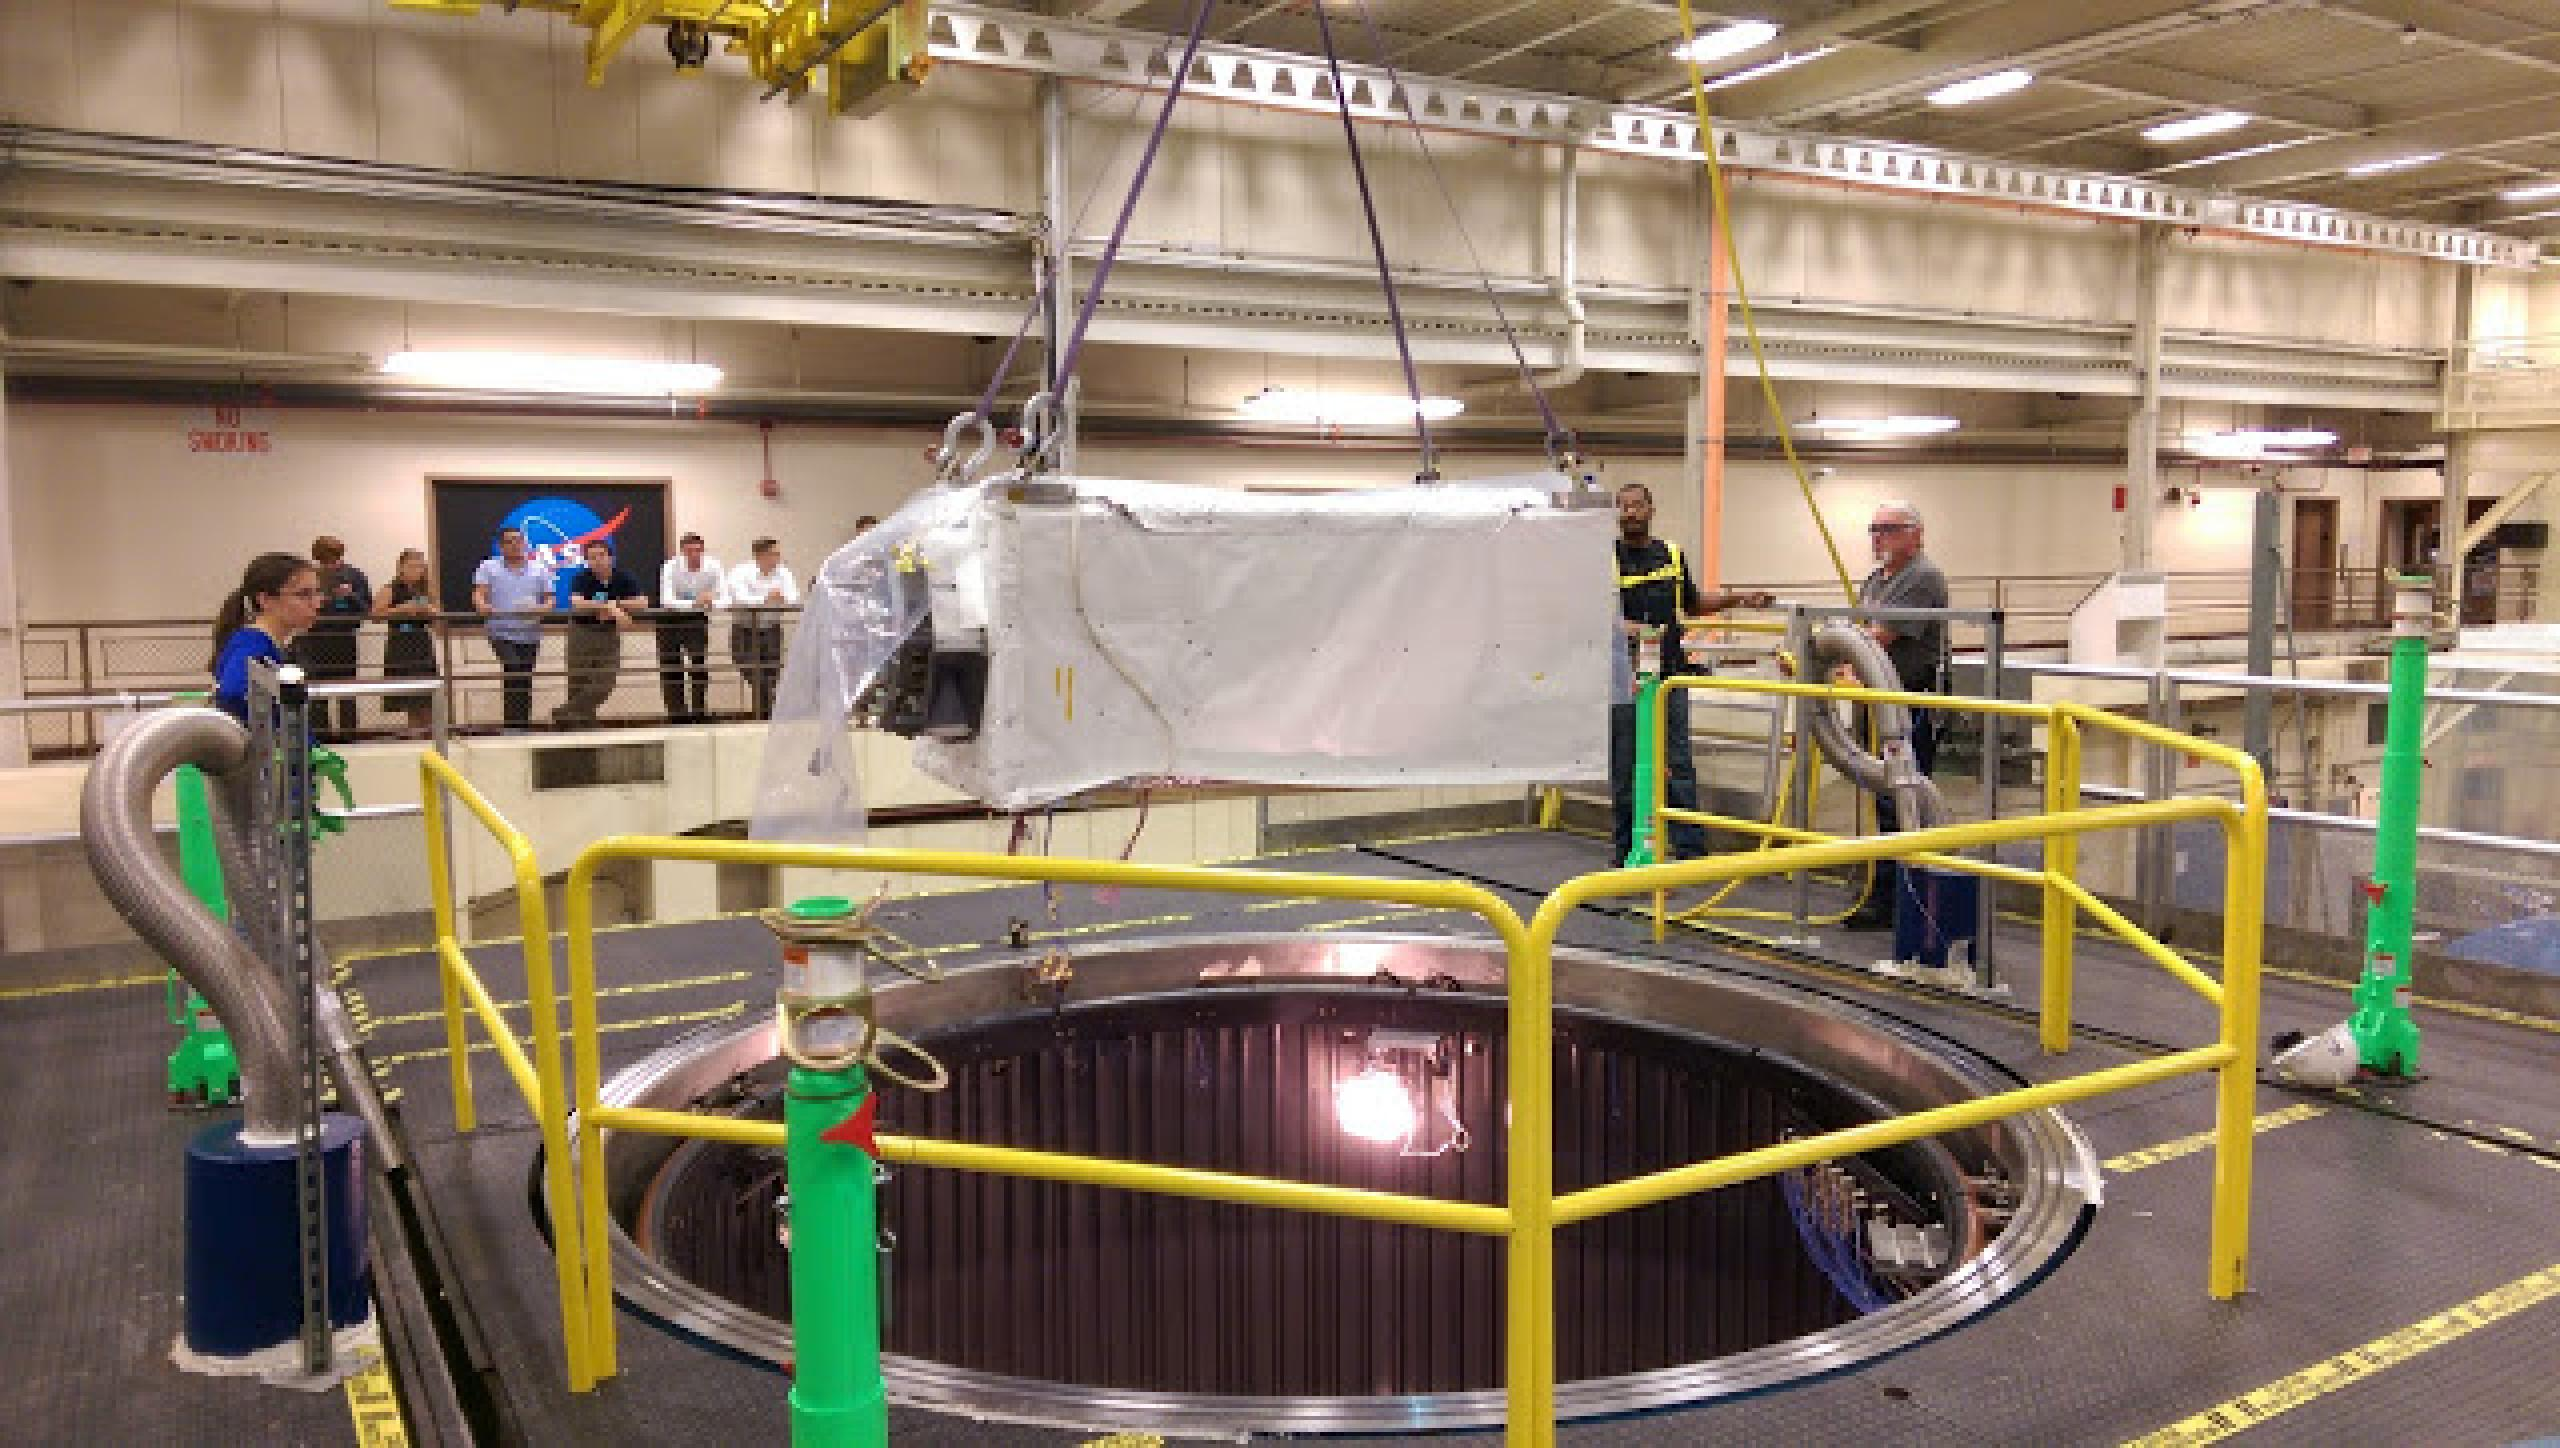 This image shows ISS-CREAM being tested in a space-like environment chamber in 2015.